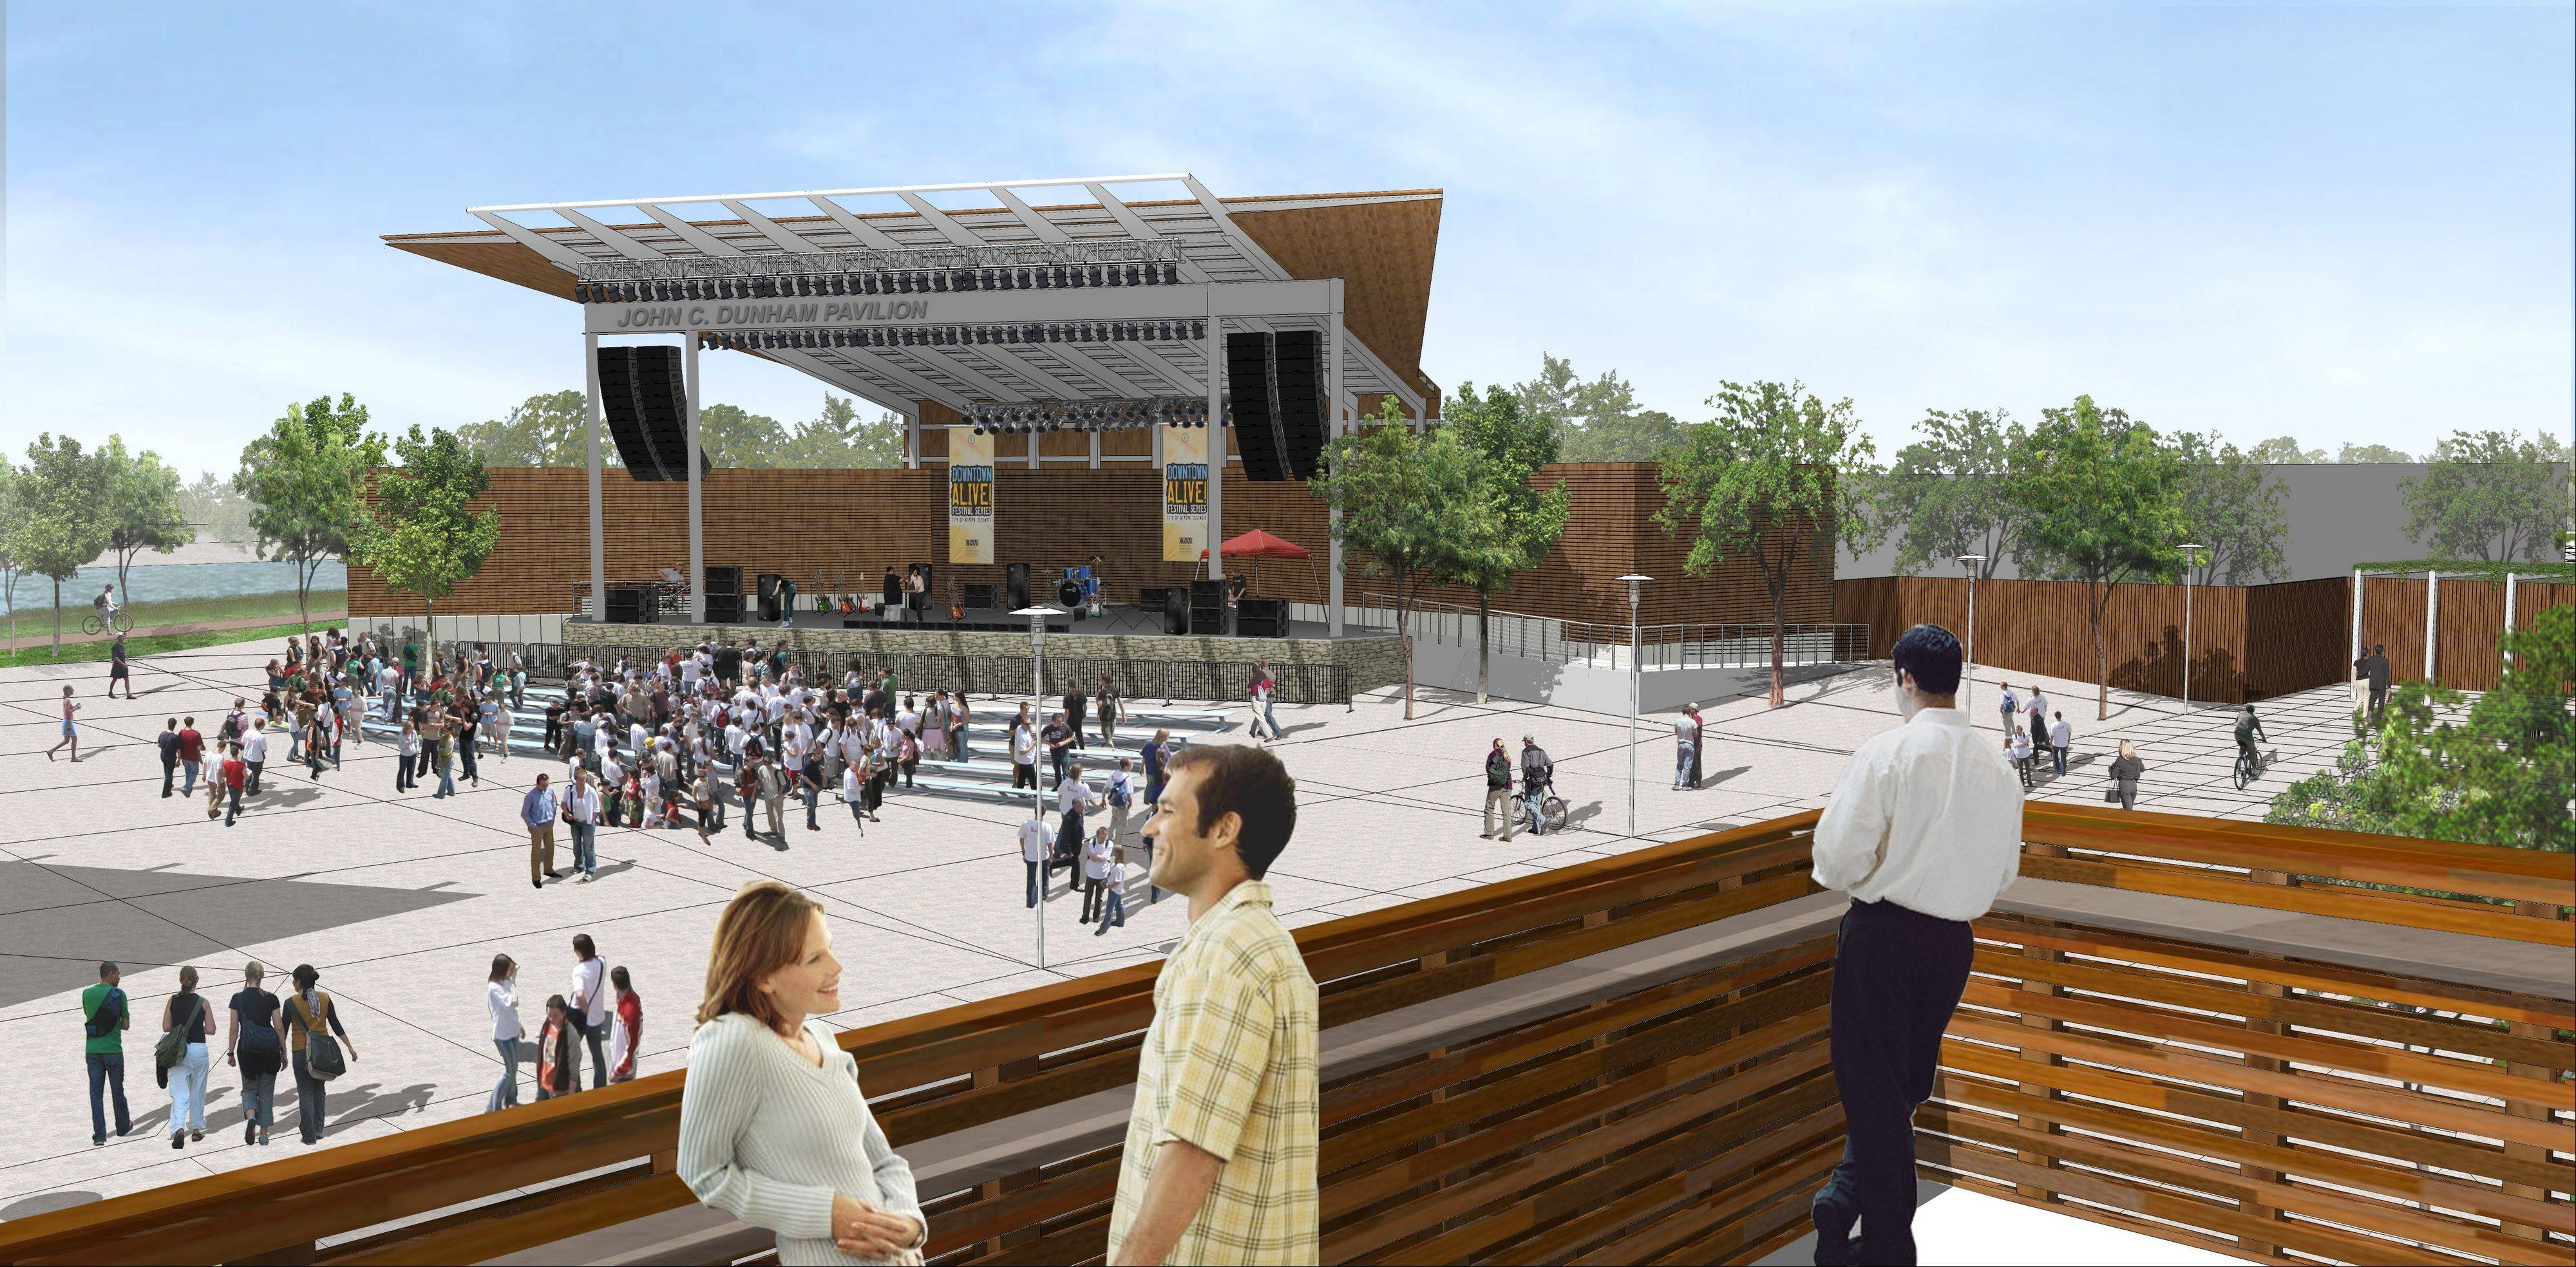 A rendering shows the John C. Dunham Pavilion in Aurora, which is set to open next summer as RiverEdge Park's concert and performance venue.